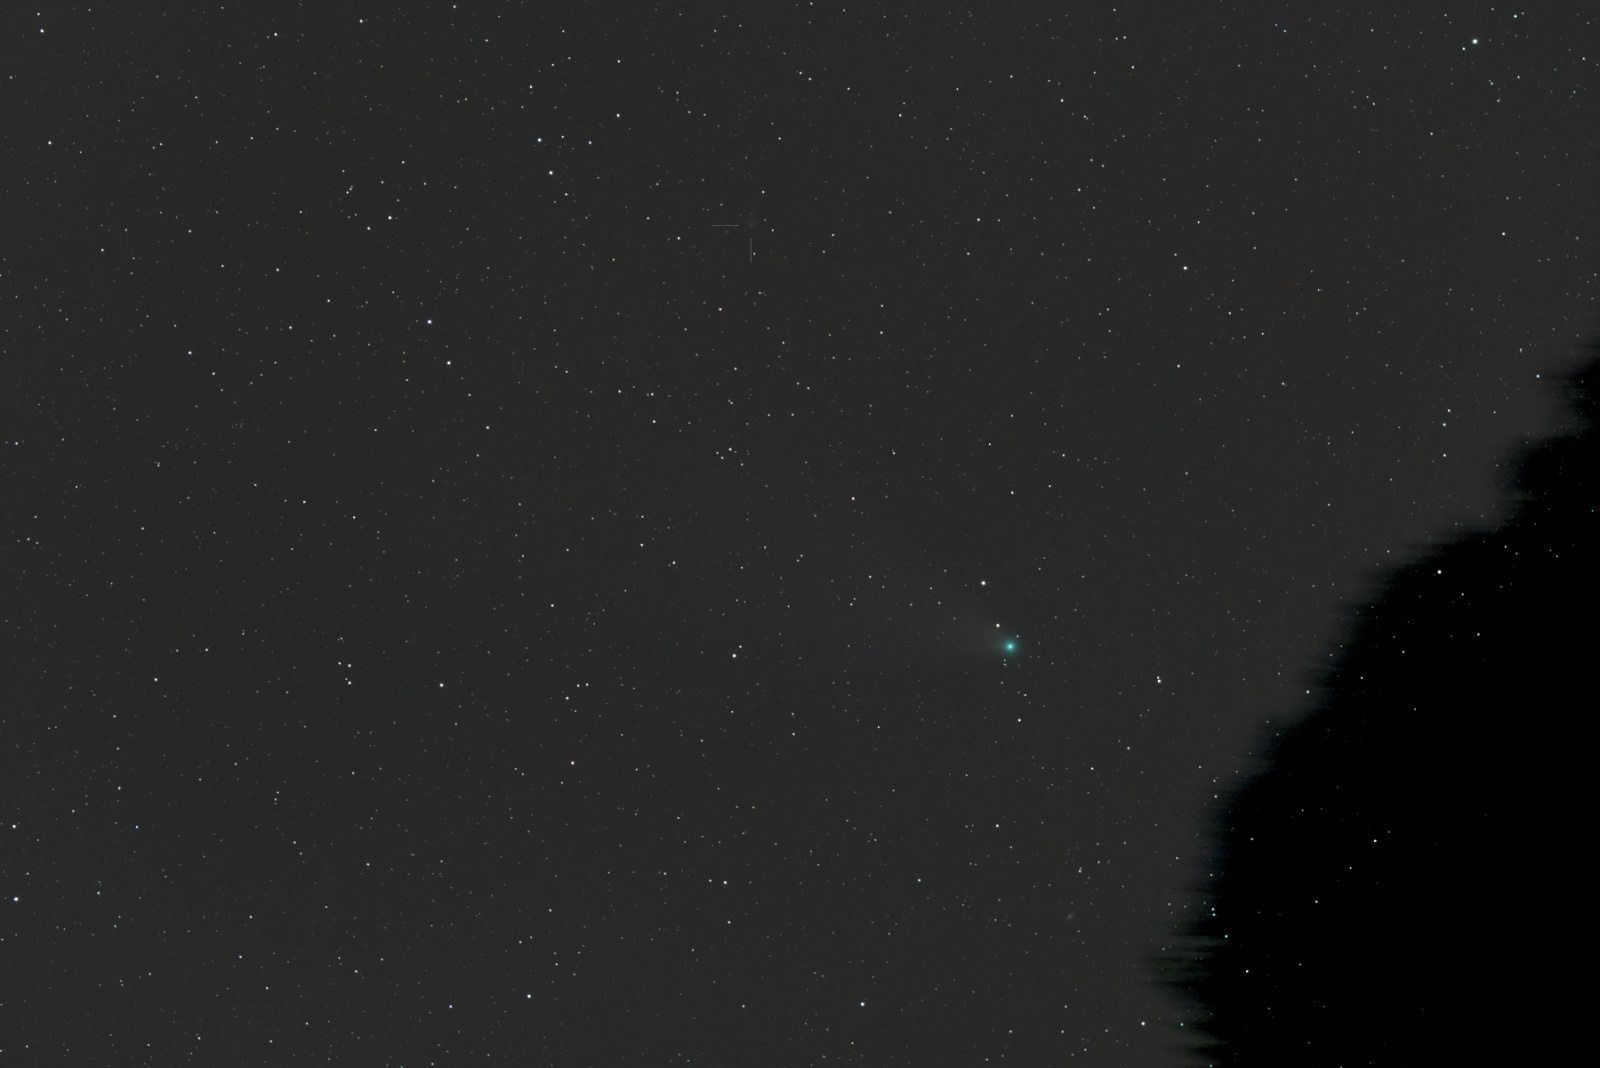 neowise_120820_noflat-RGB-session_1-lpc-cbg_filtered.jpg